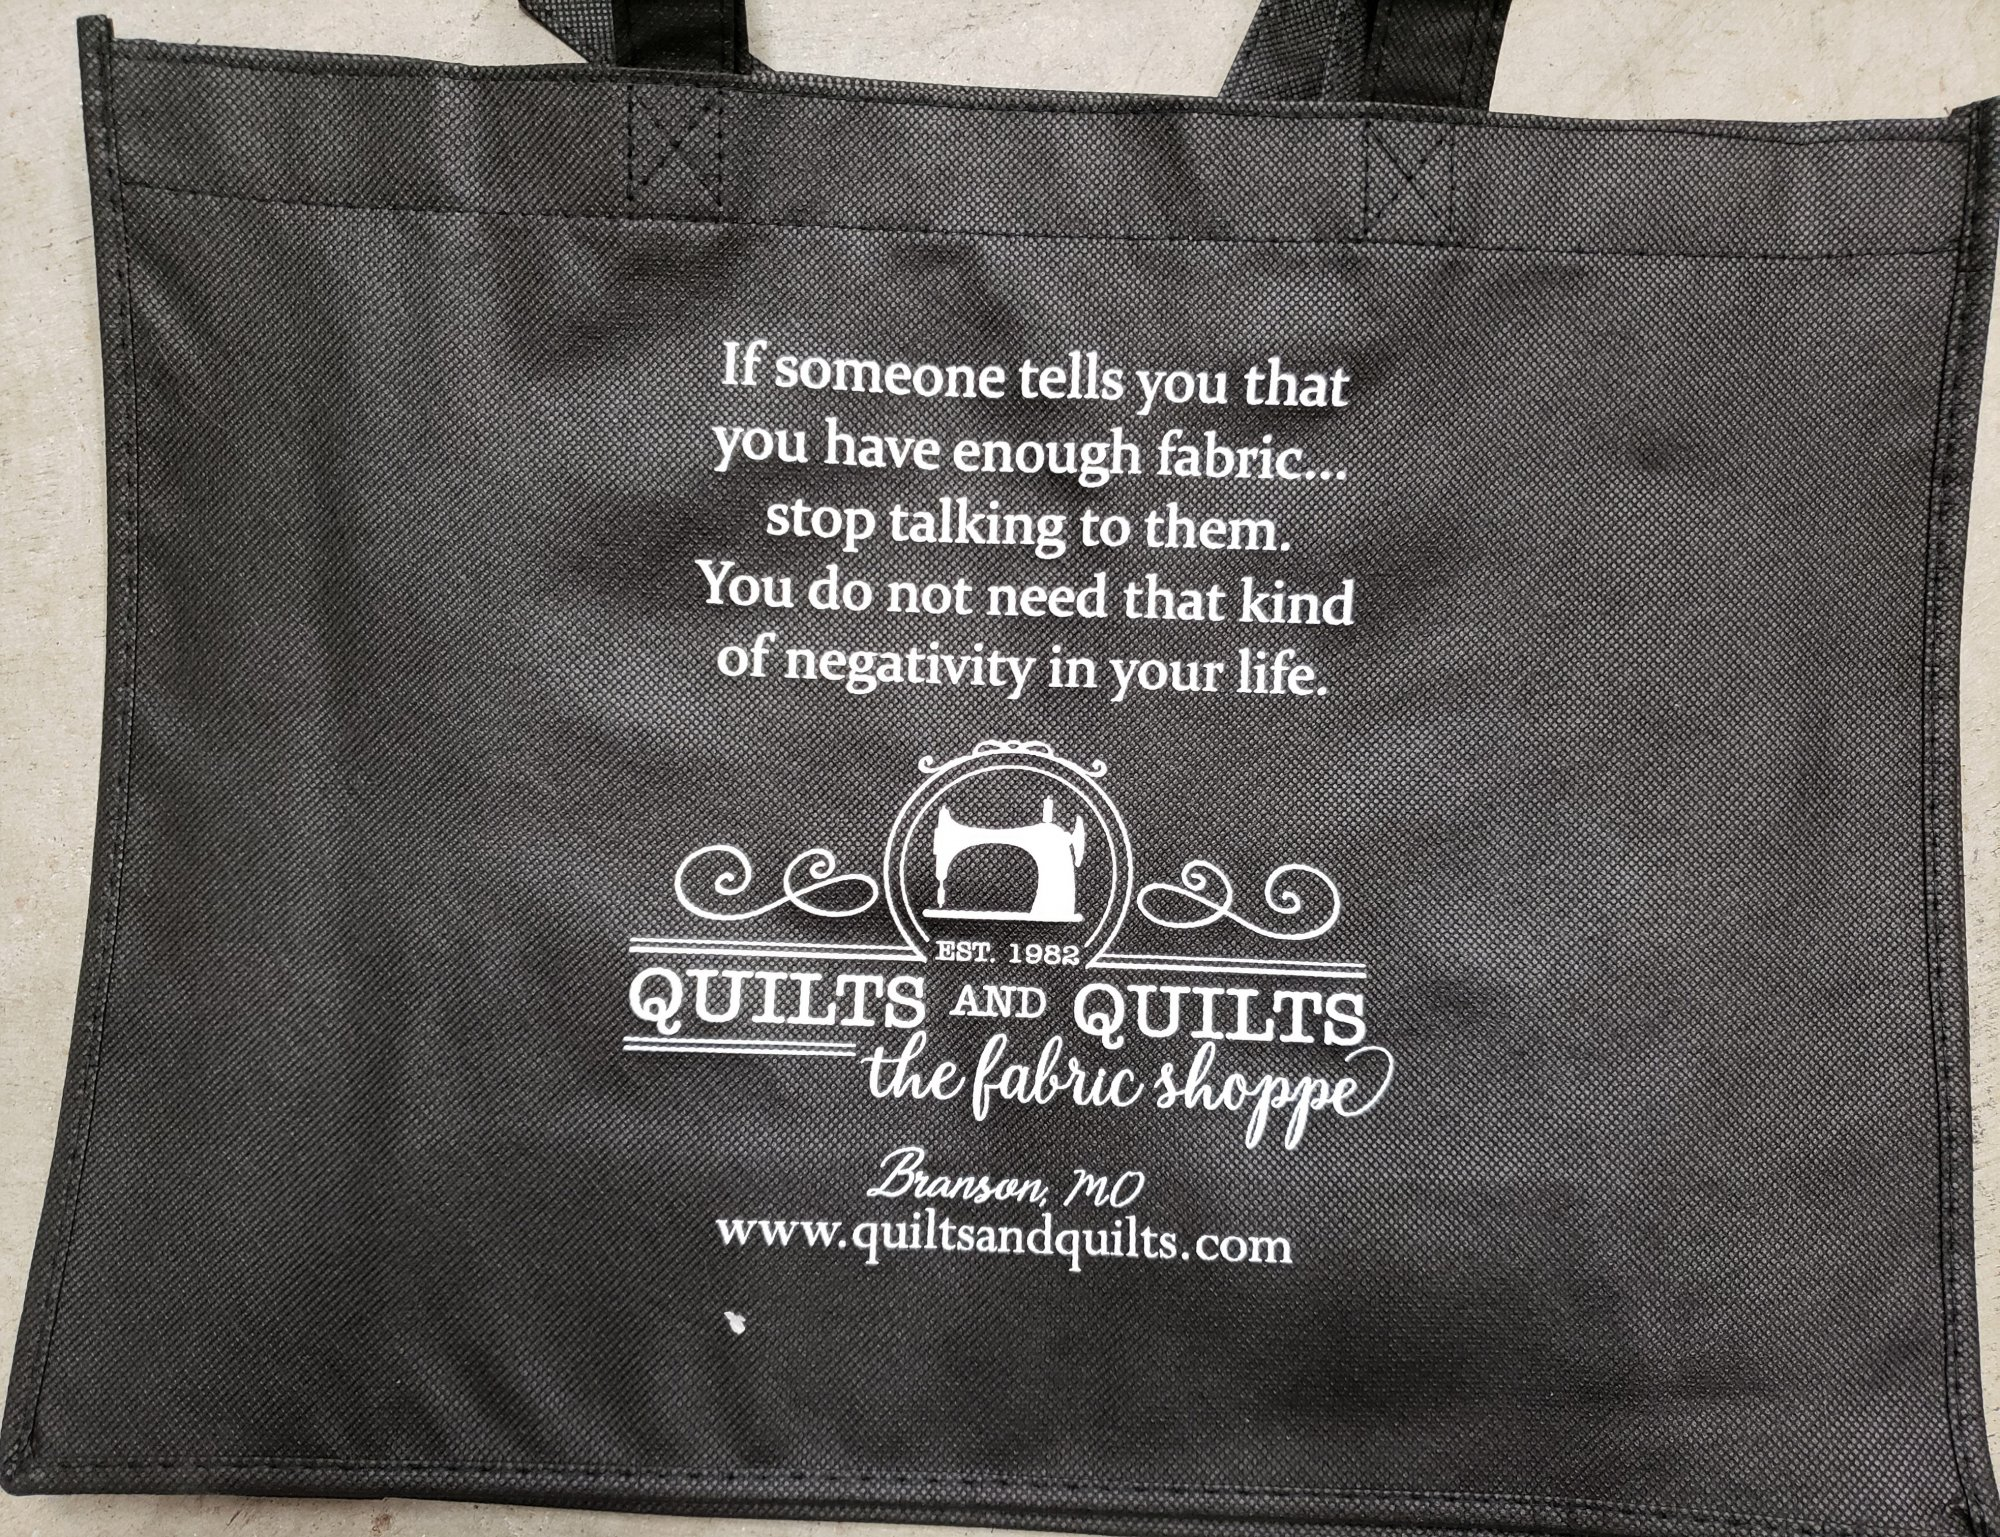 Quilts & Quilts Tote Bag - Negativity in your life